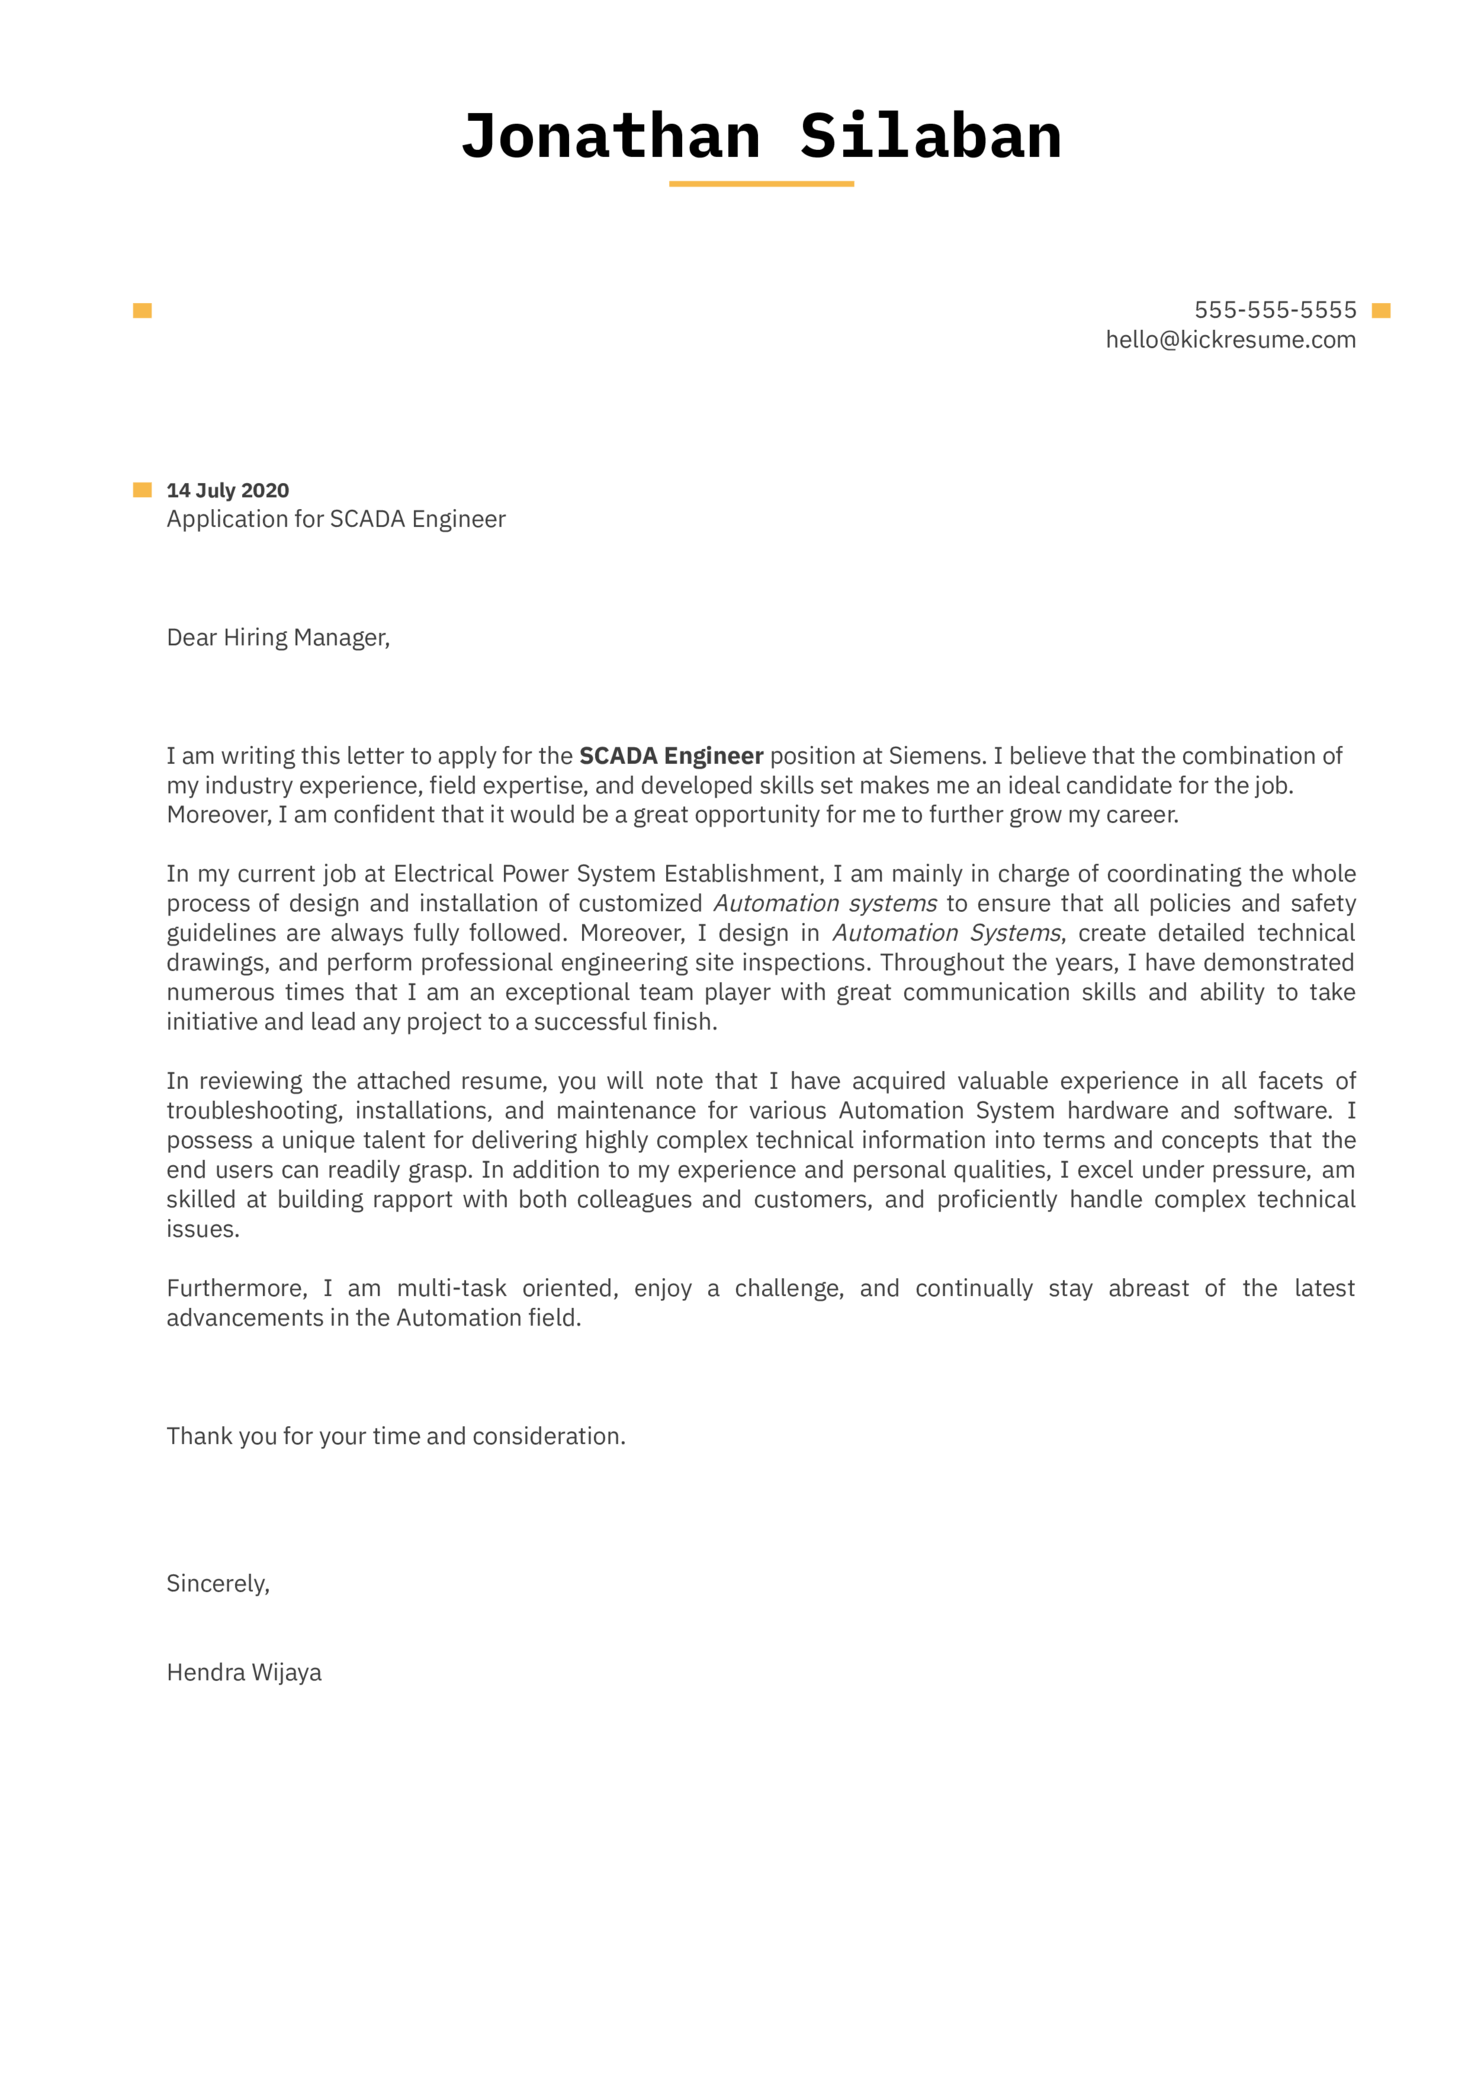 Siemens SCADA Engineer Cover Letter Template